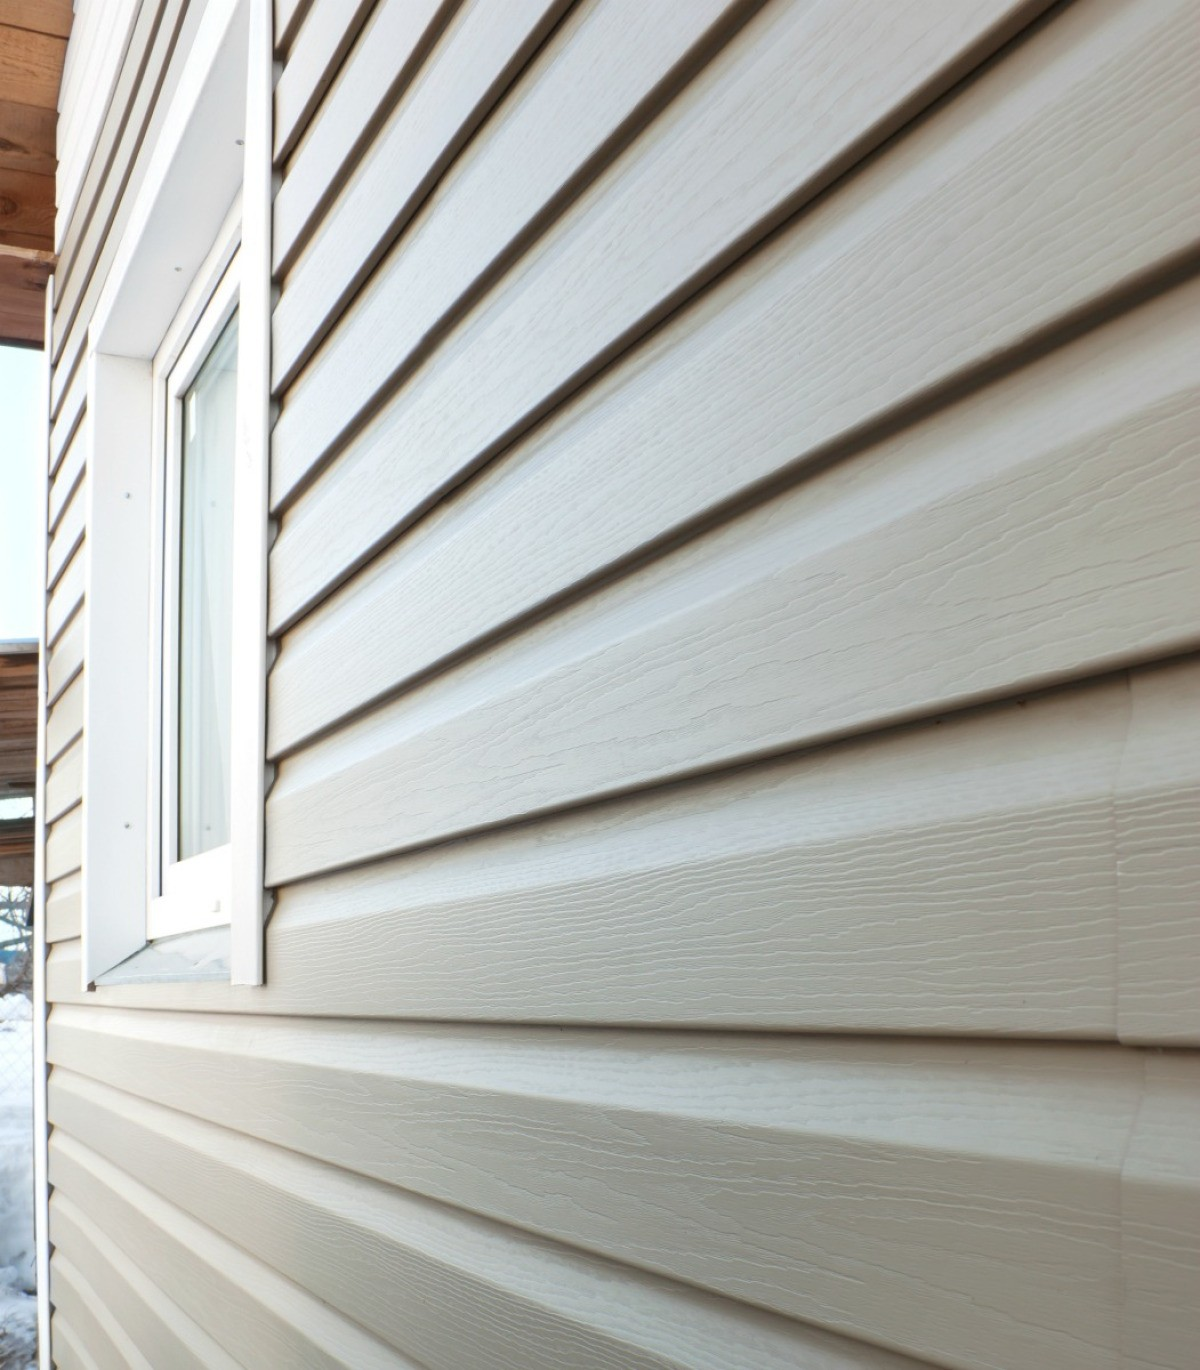 Removing Wood Stain From Vinyl Siding